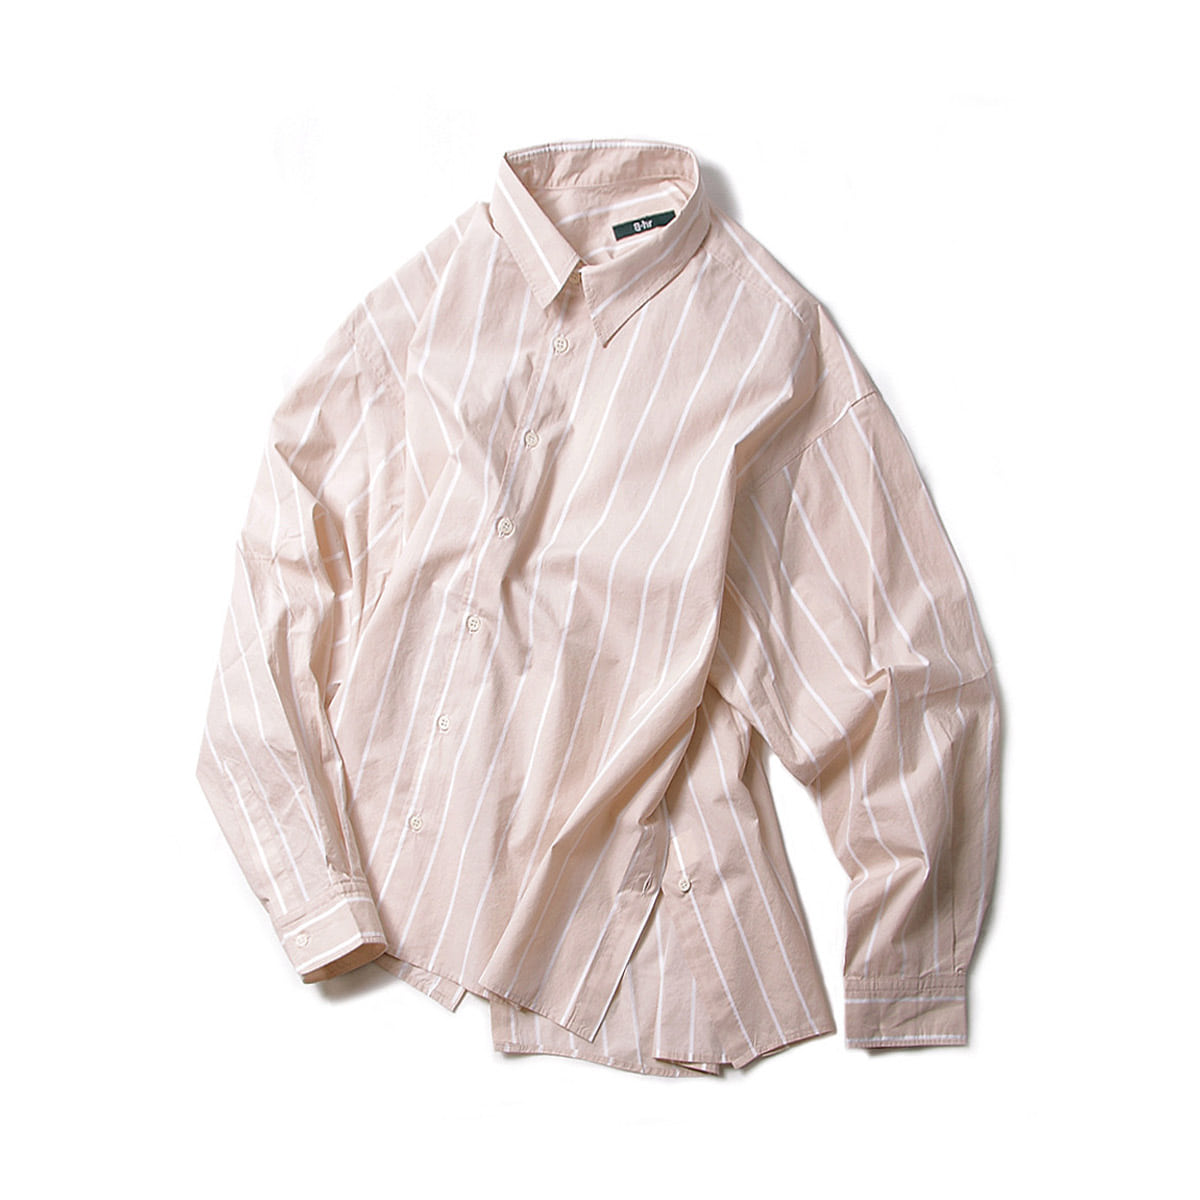 [BEHEAVYER] SIDE UP SHIRT 'BEIGE STRIPE'